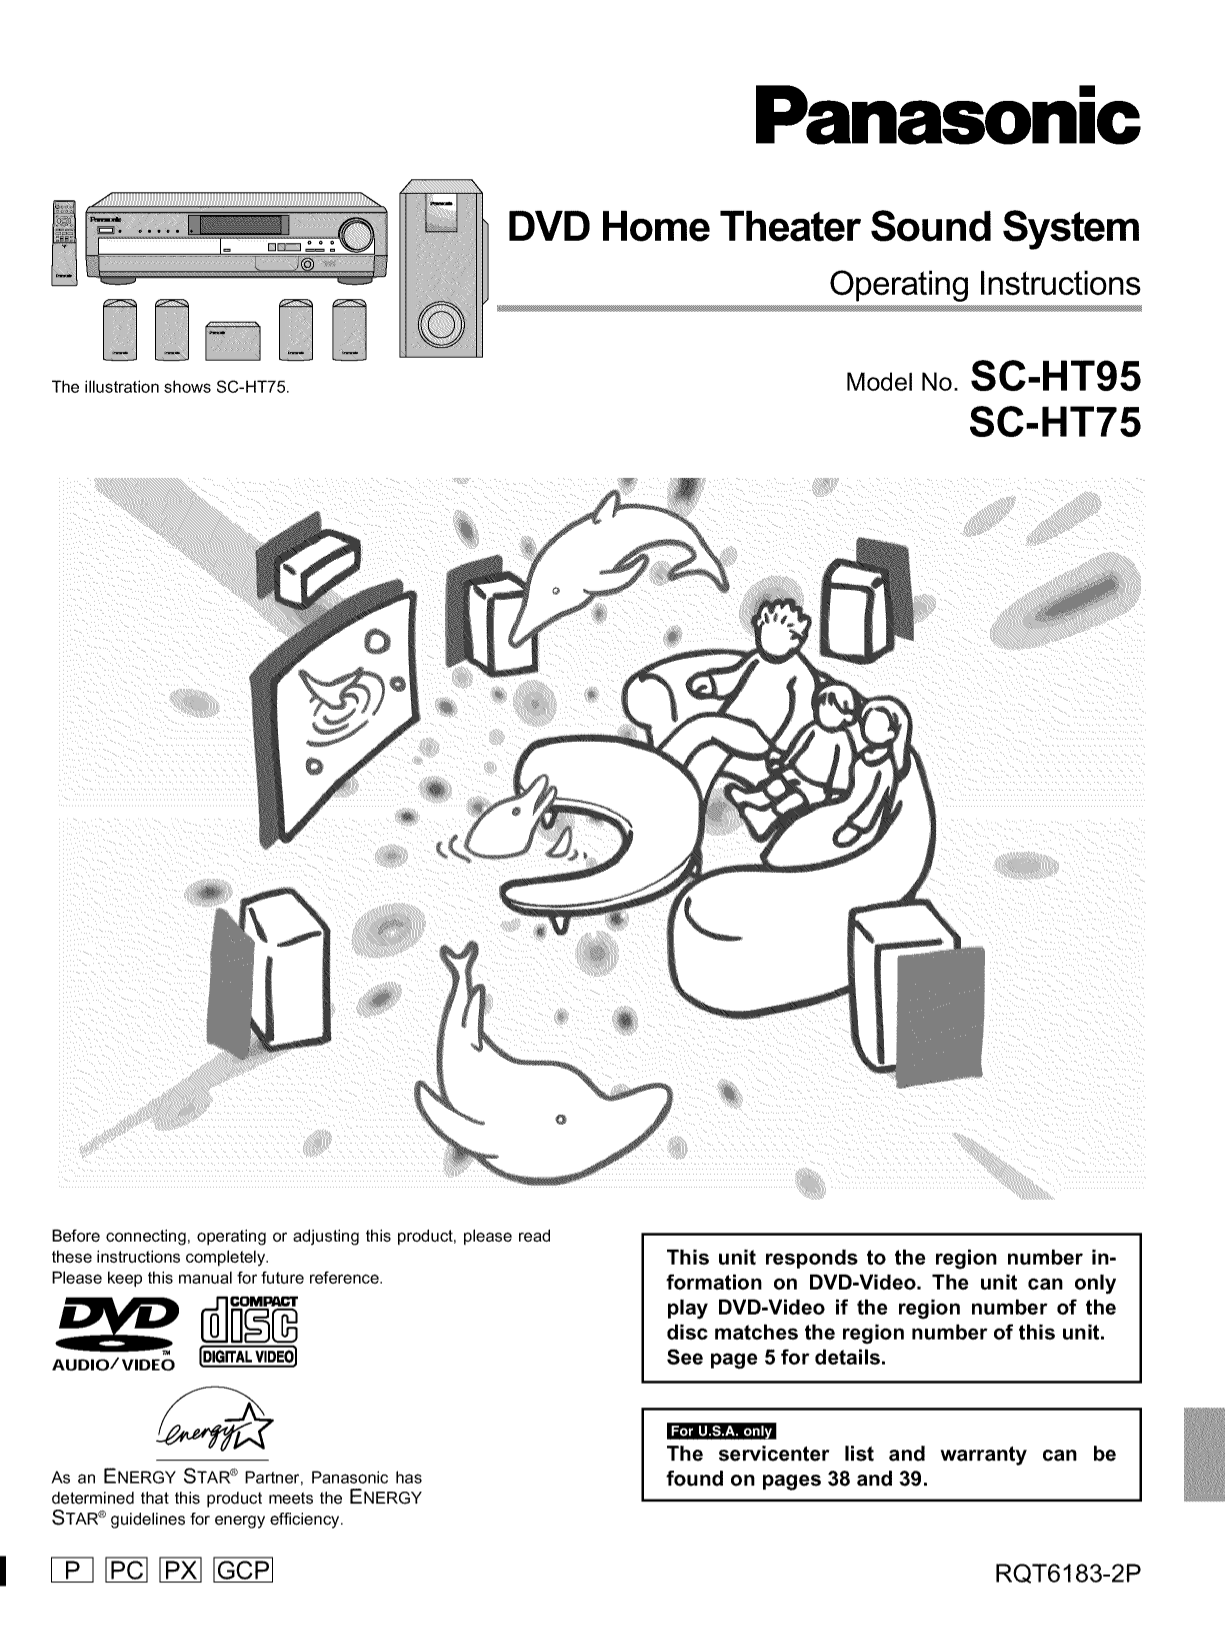 download free pdf for panasonic sa ht75 home theater manual rh umlib com panasonic sa-ht75 specifications panasonic sa-ht75 manual pdf